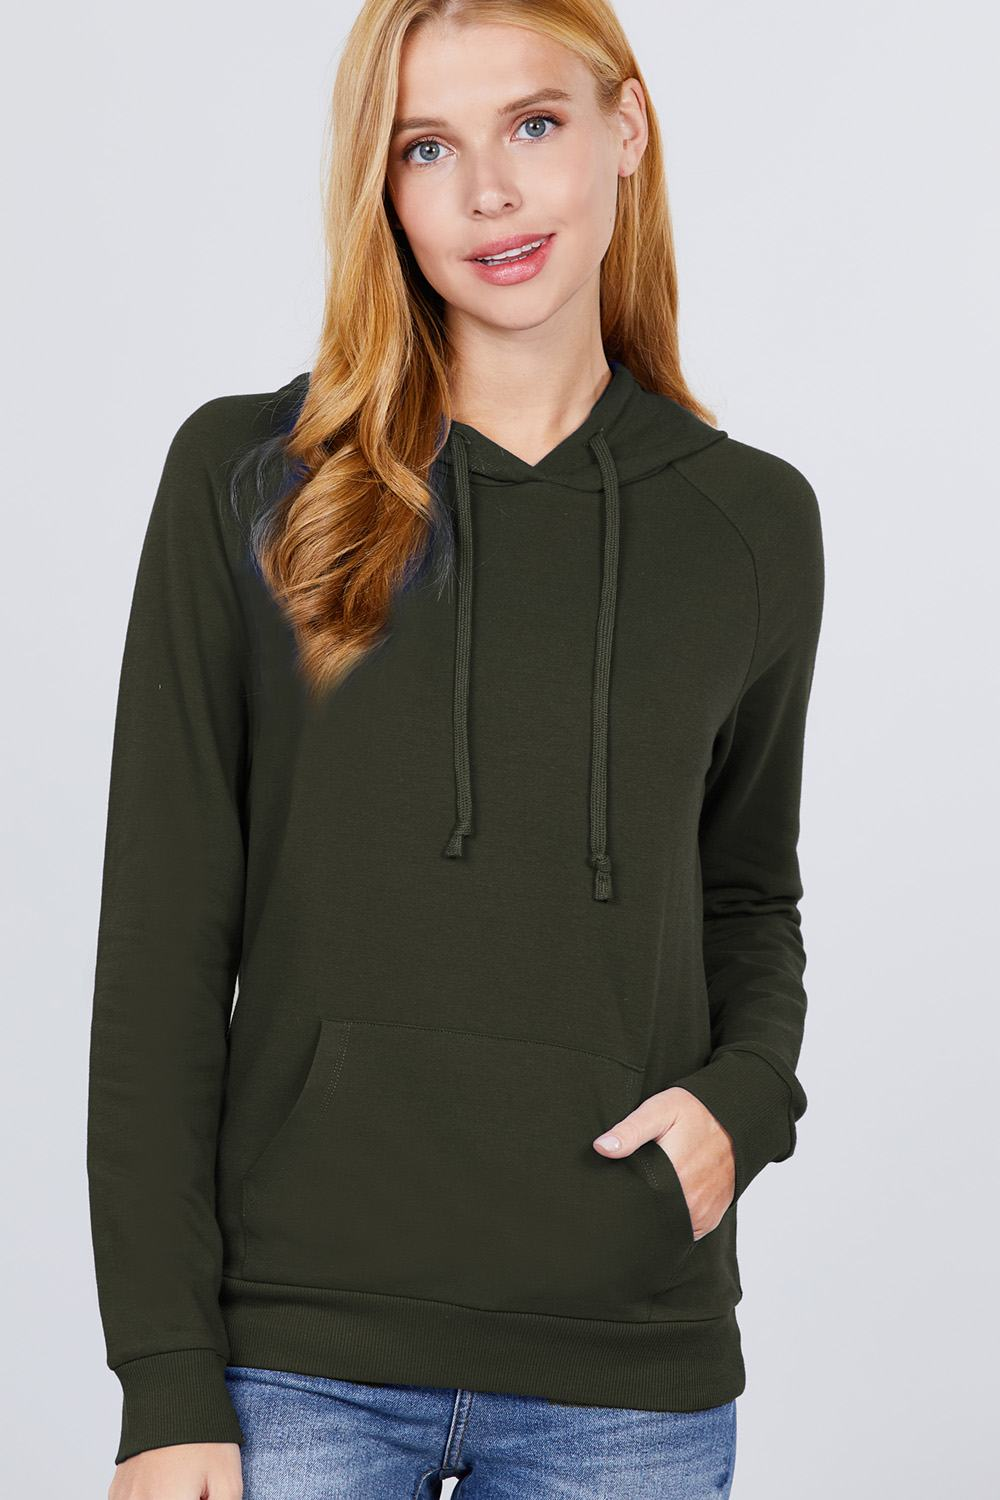 Sweat à capuche french terry pullover 53266b. Vetements Fashions Femme, FRANCE